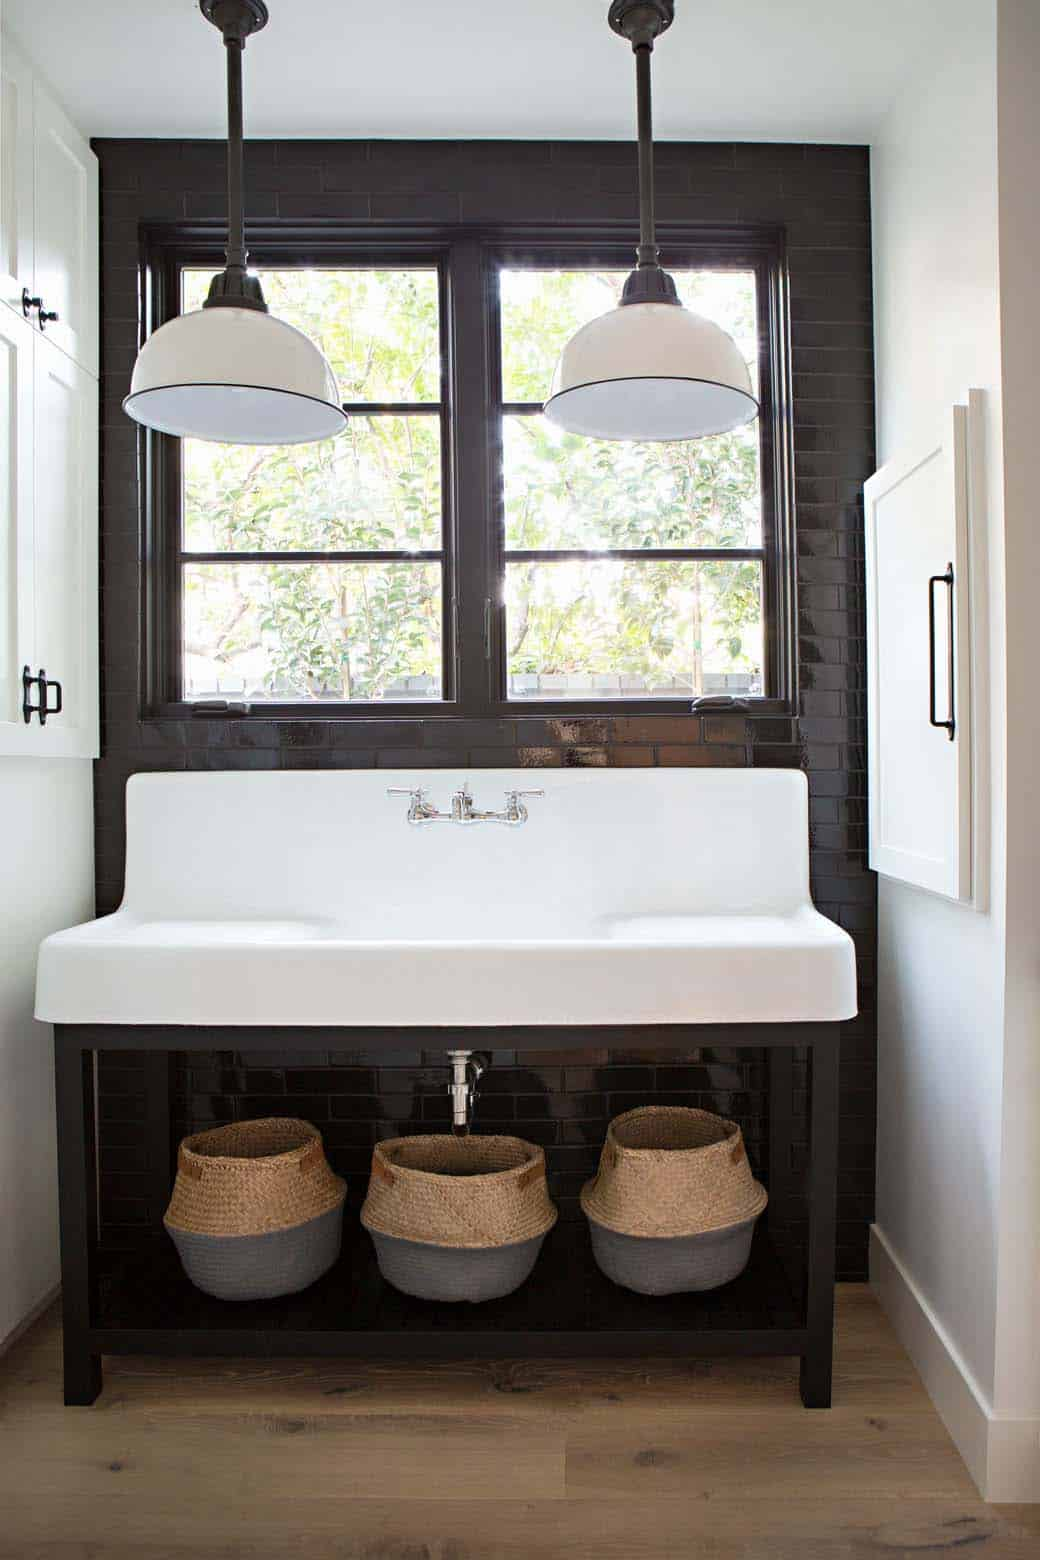 Modern Farmhouse Style-Eric Olsen Design-10-1 Kindesign